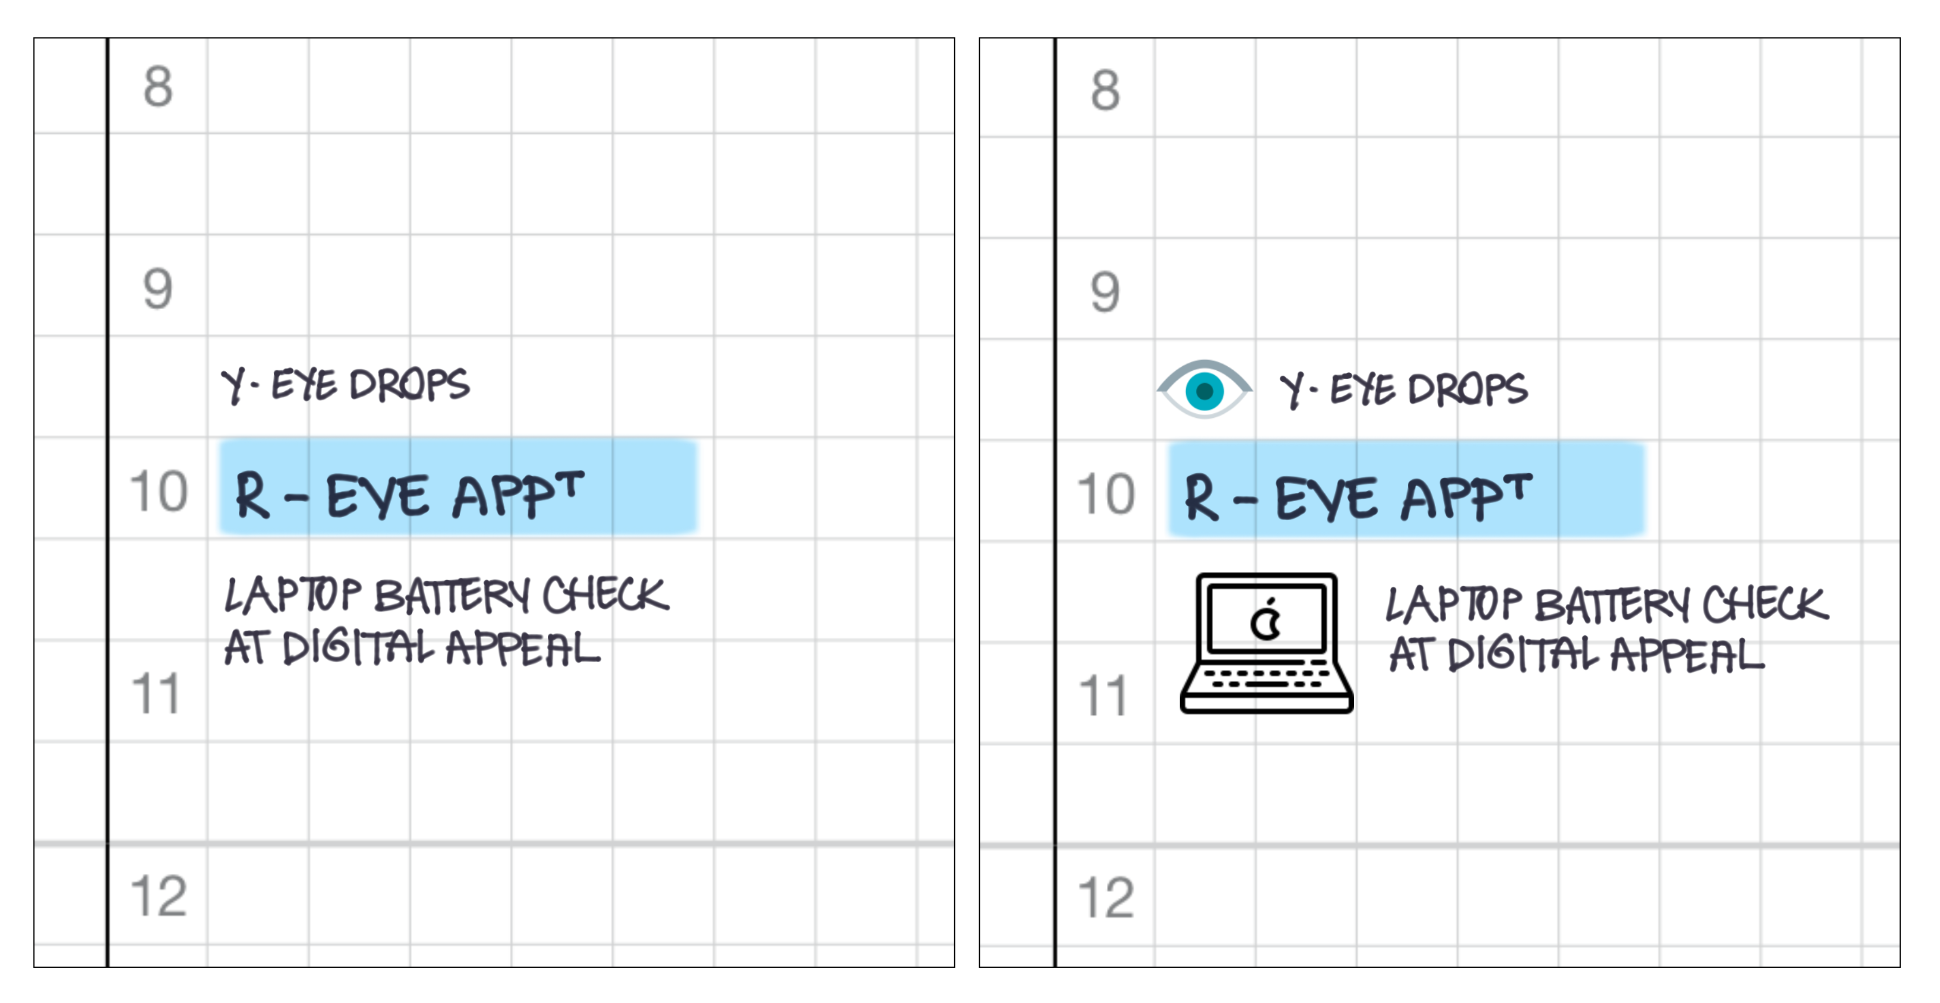 Two screenshots of a planner schedule, with and without icons.